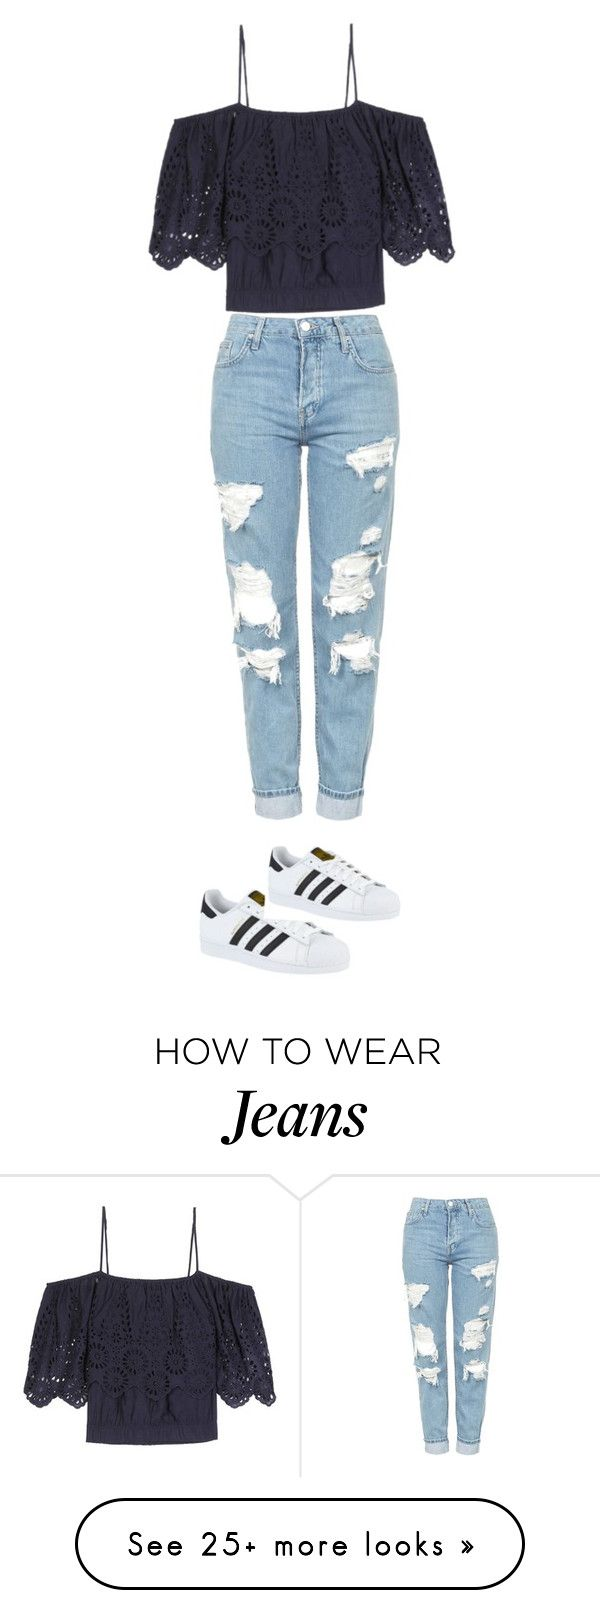 """Shoes: superstar original Jeans :Boy-friend Top: croptop"" by gena2003 on Polyvore featuring Topshop, Ganni and adidas"